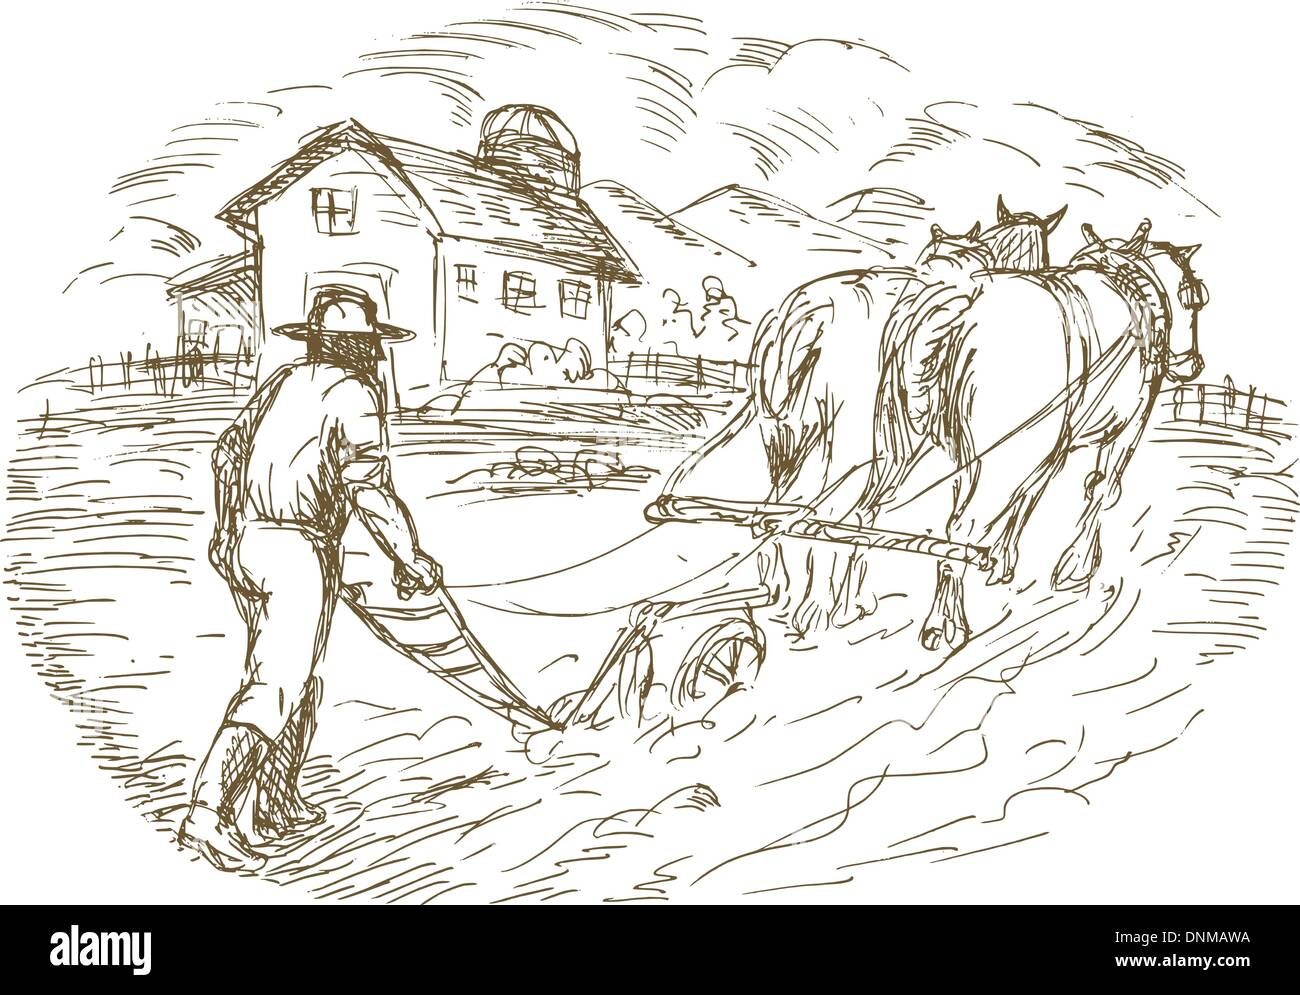 Hand Drawn Sketched Vector Illustration Of A Farmer And Horse Plowing The Field With Barn Farmhouse